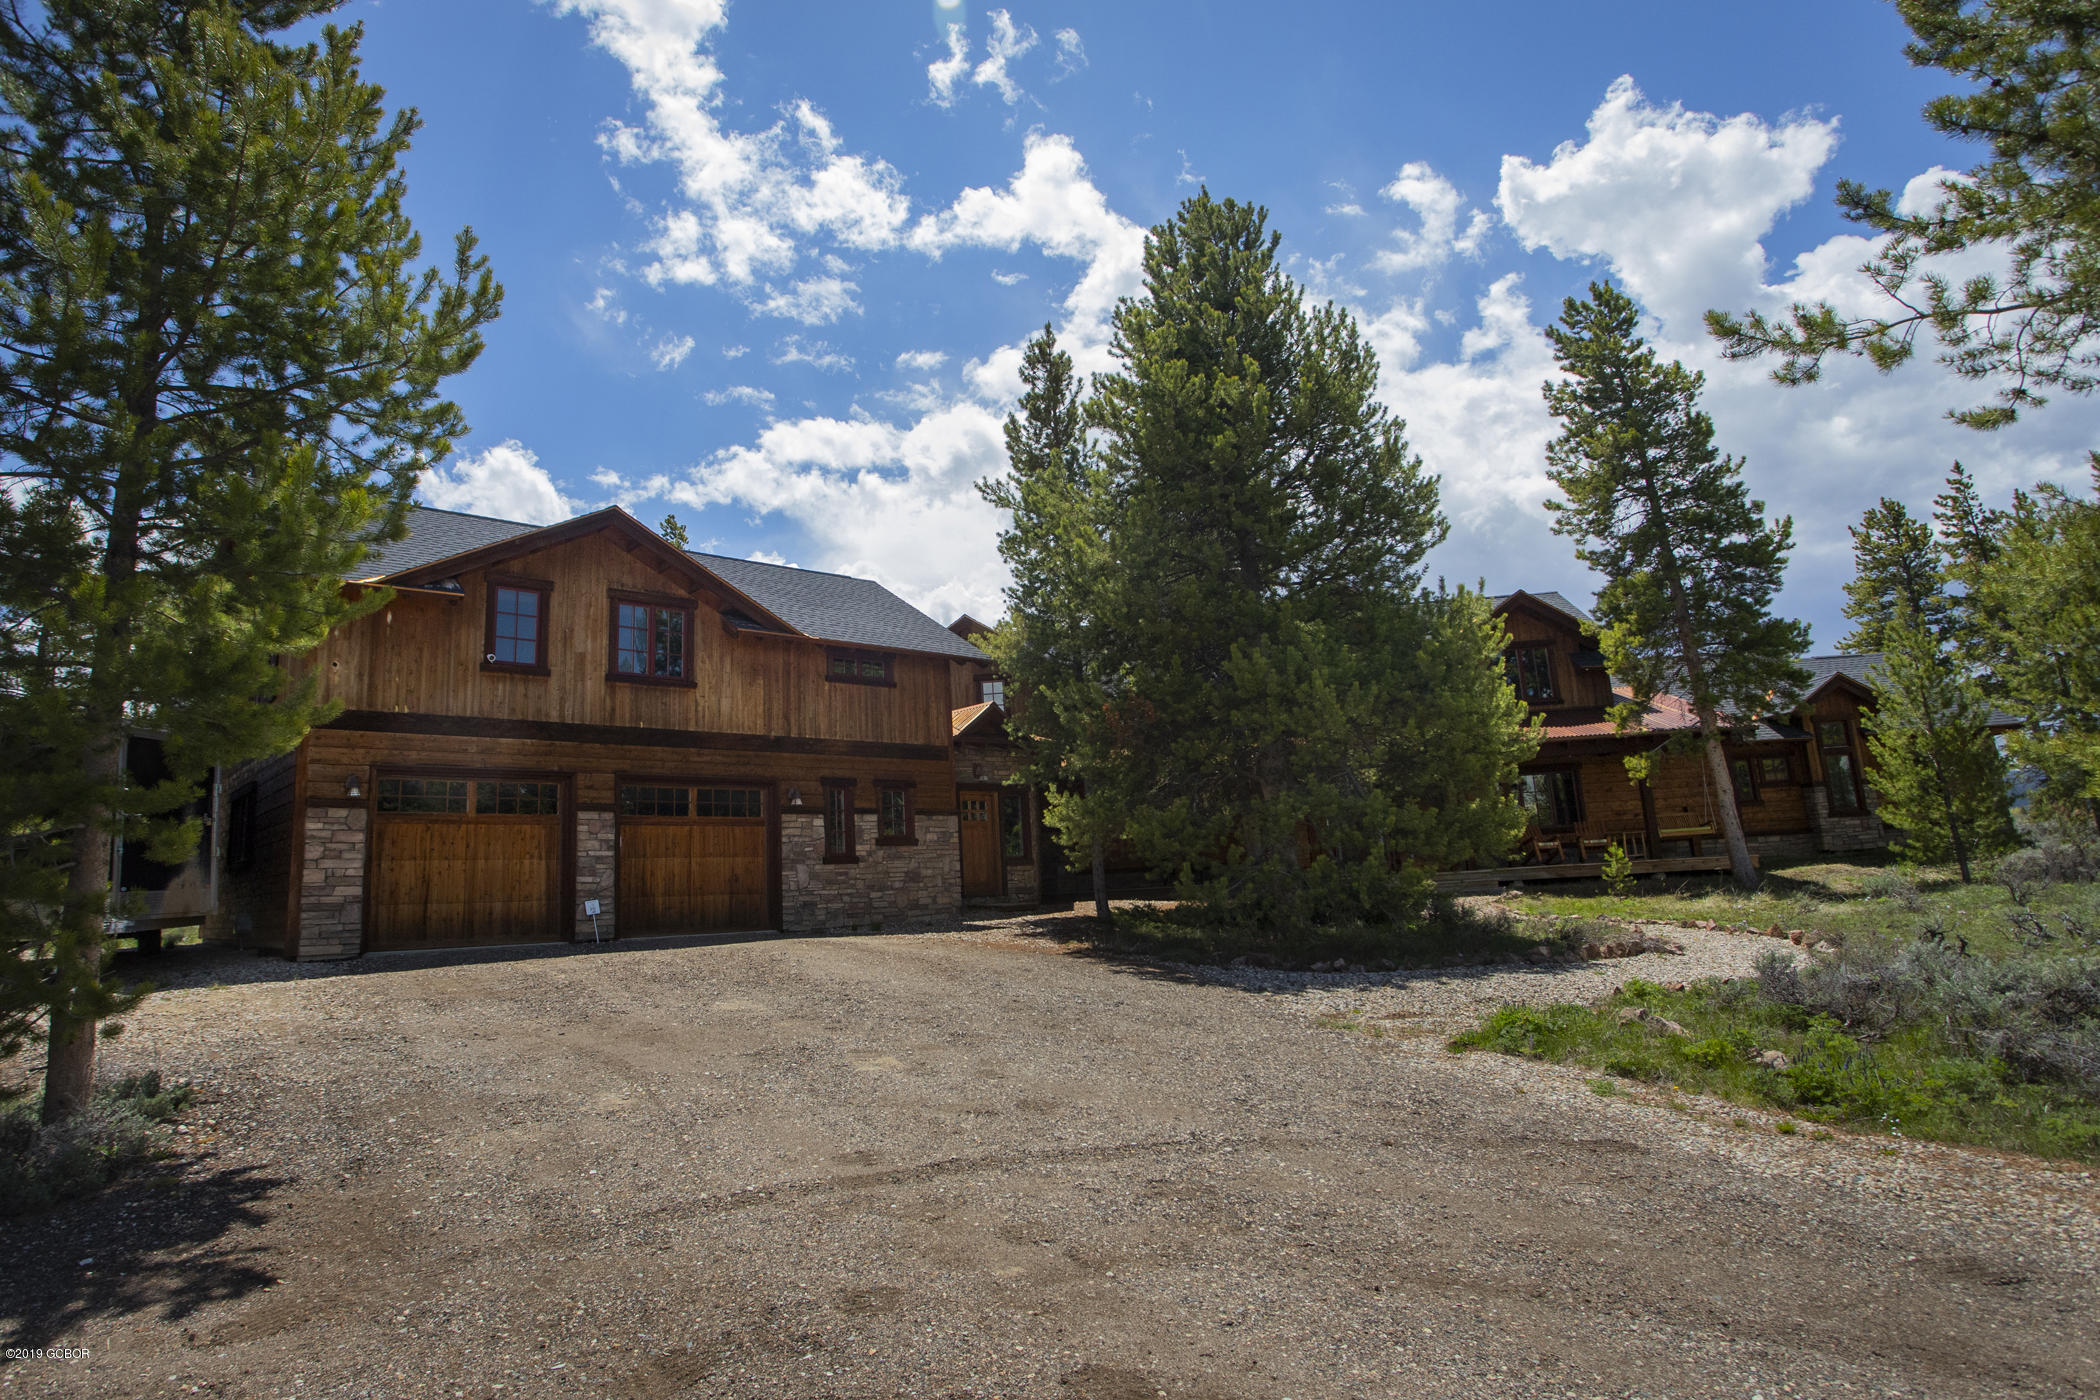 MLS# 19-704 - 6 - 612 County Rd 6237  #, Granby, CO 80446